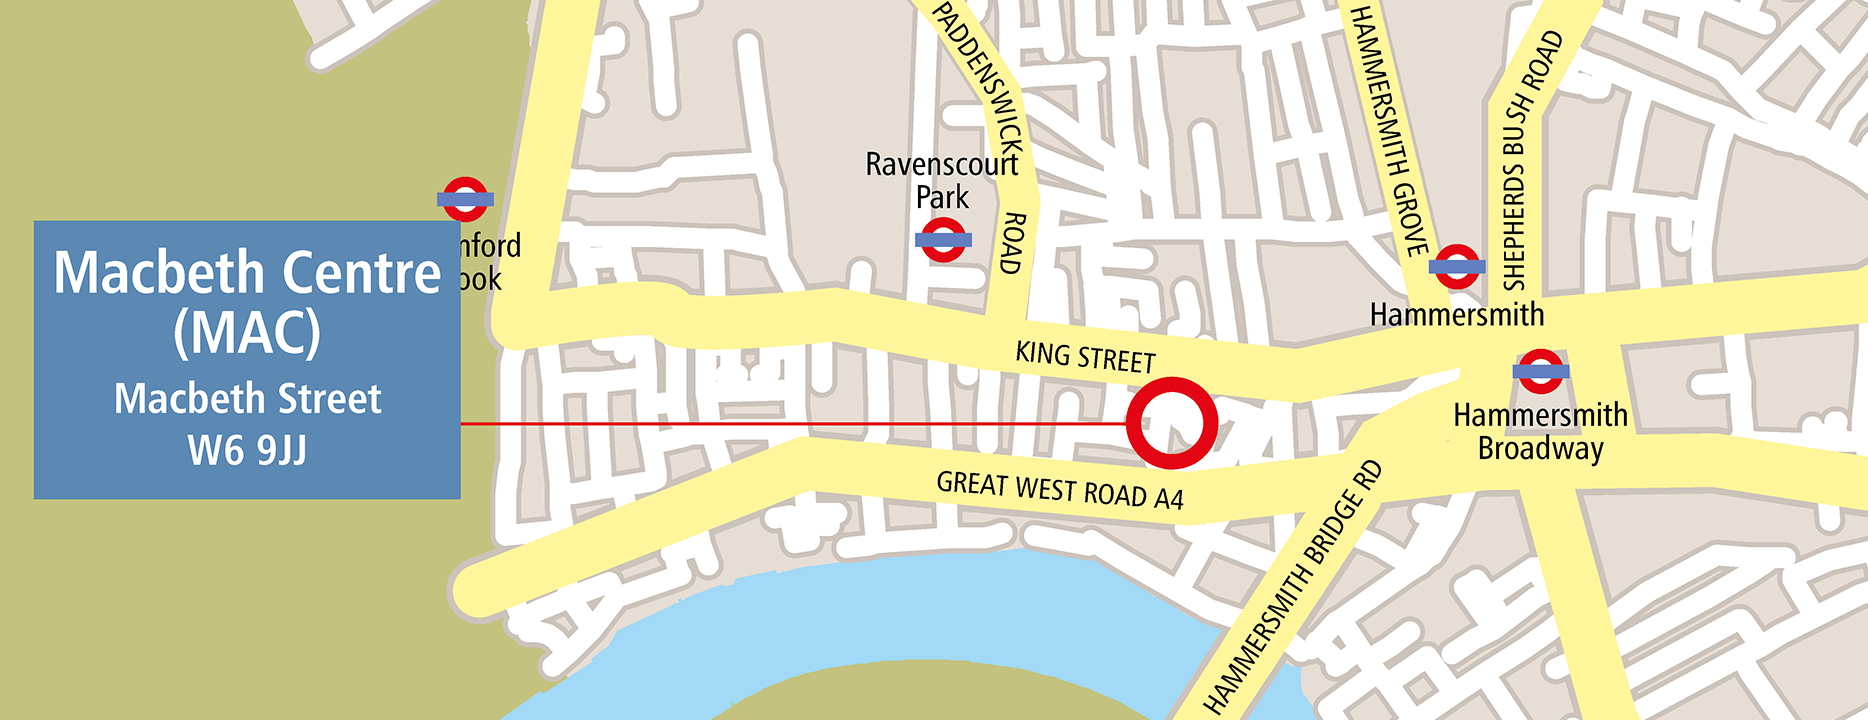 Map of Macbeth Centre venue